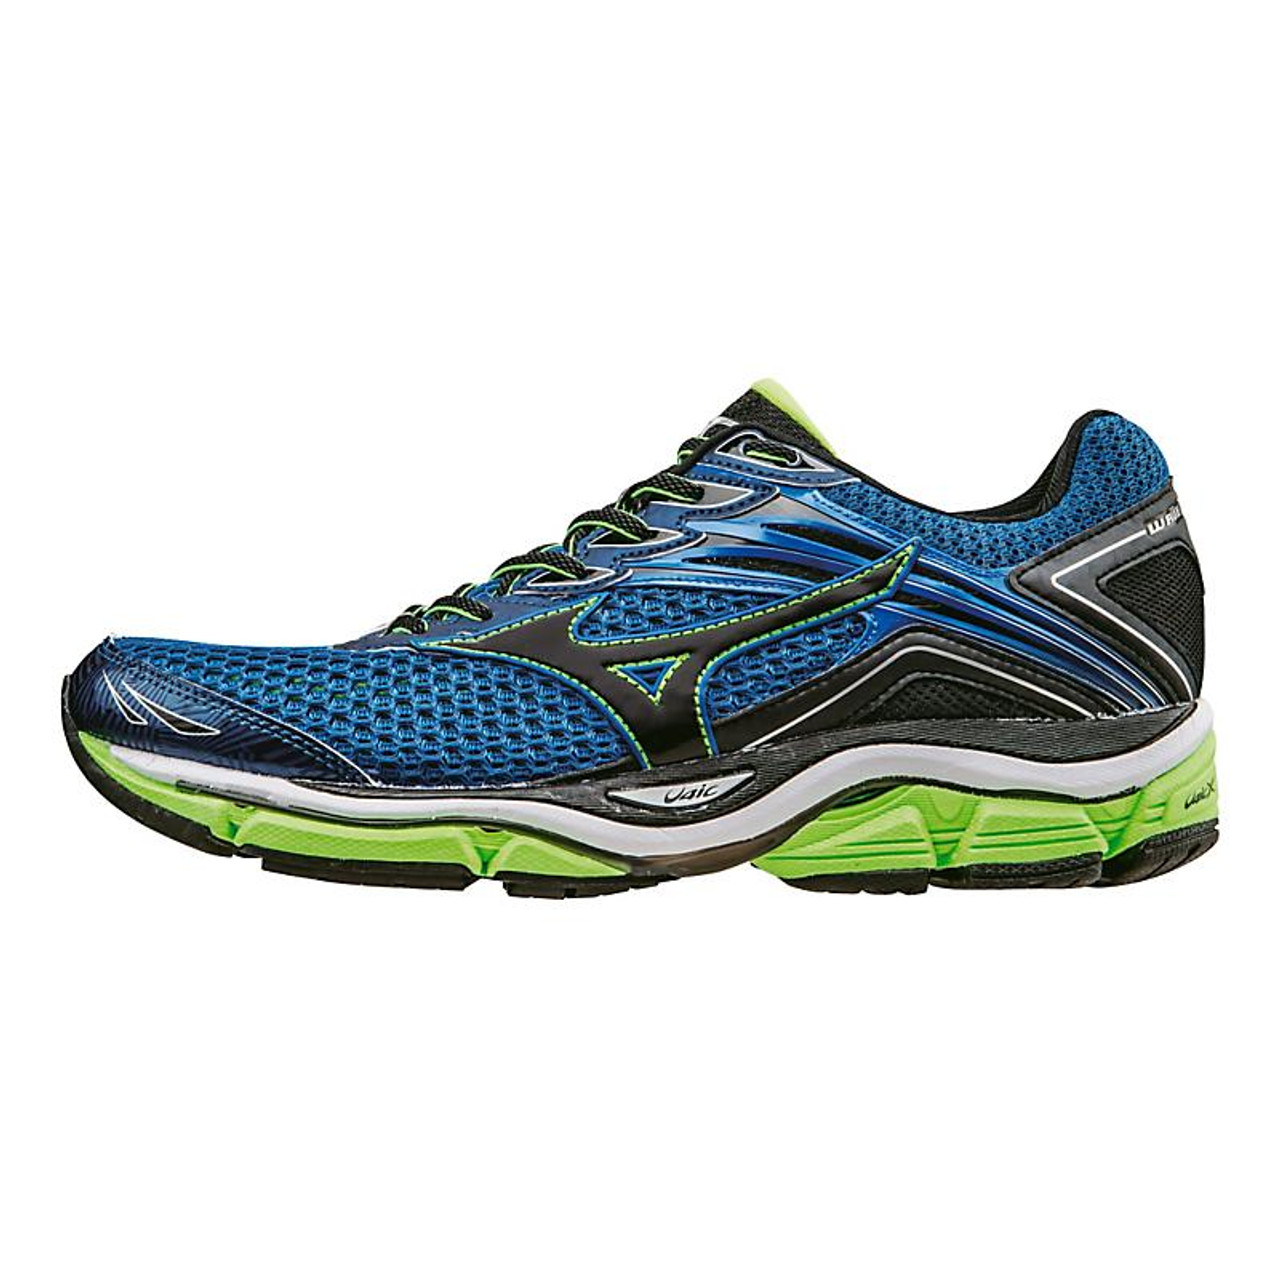 venta caliente online 6bad6 c0ec9 Men's Mizuno Wave Enigma 6